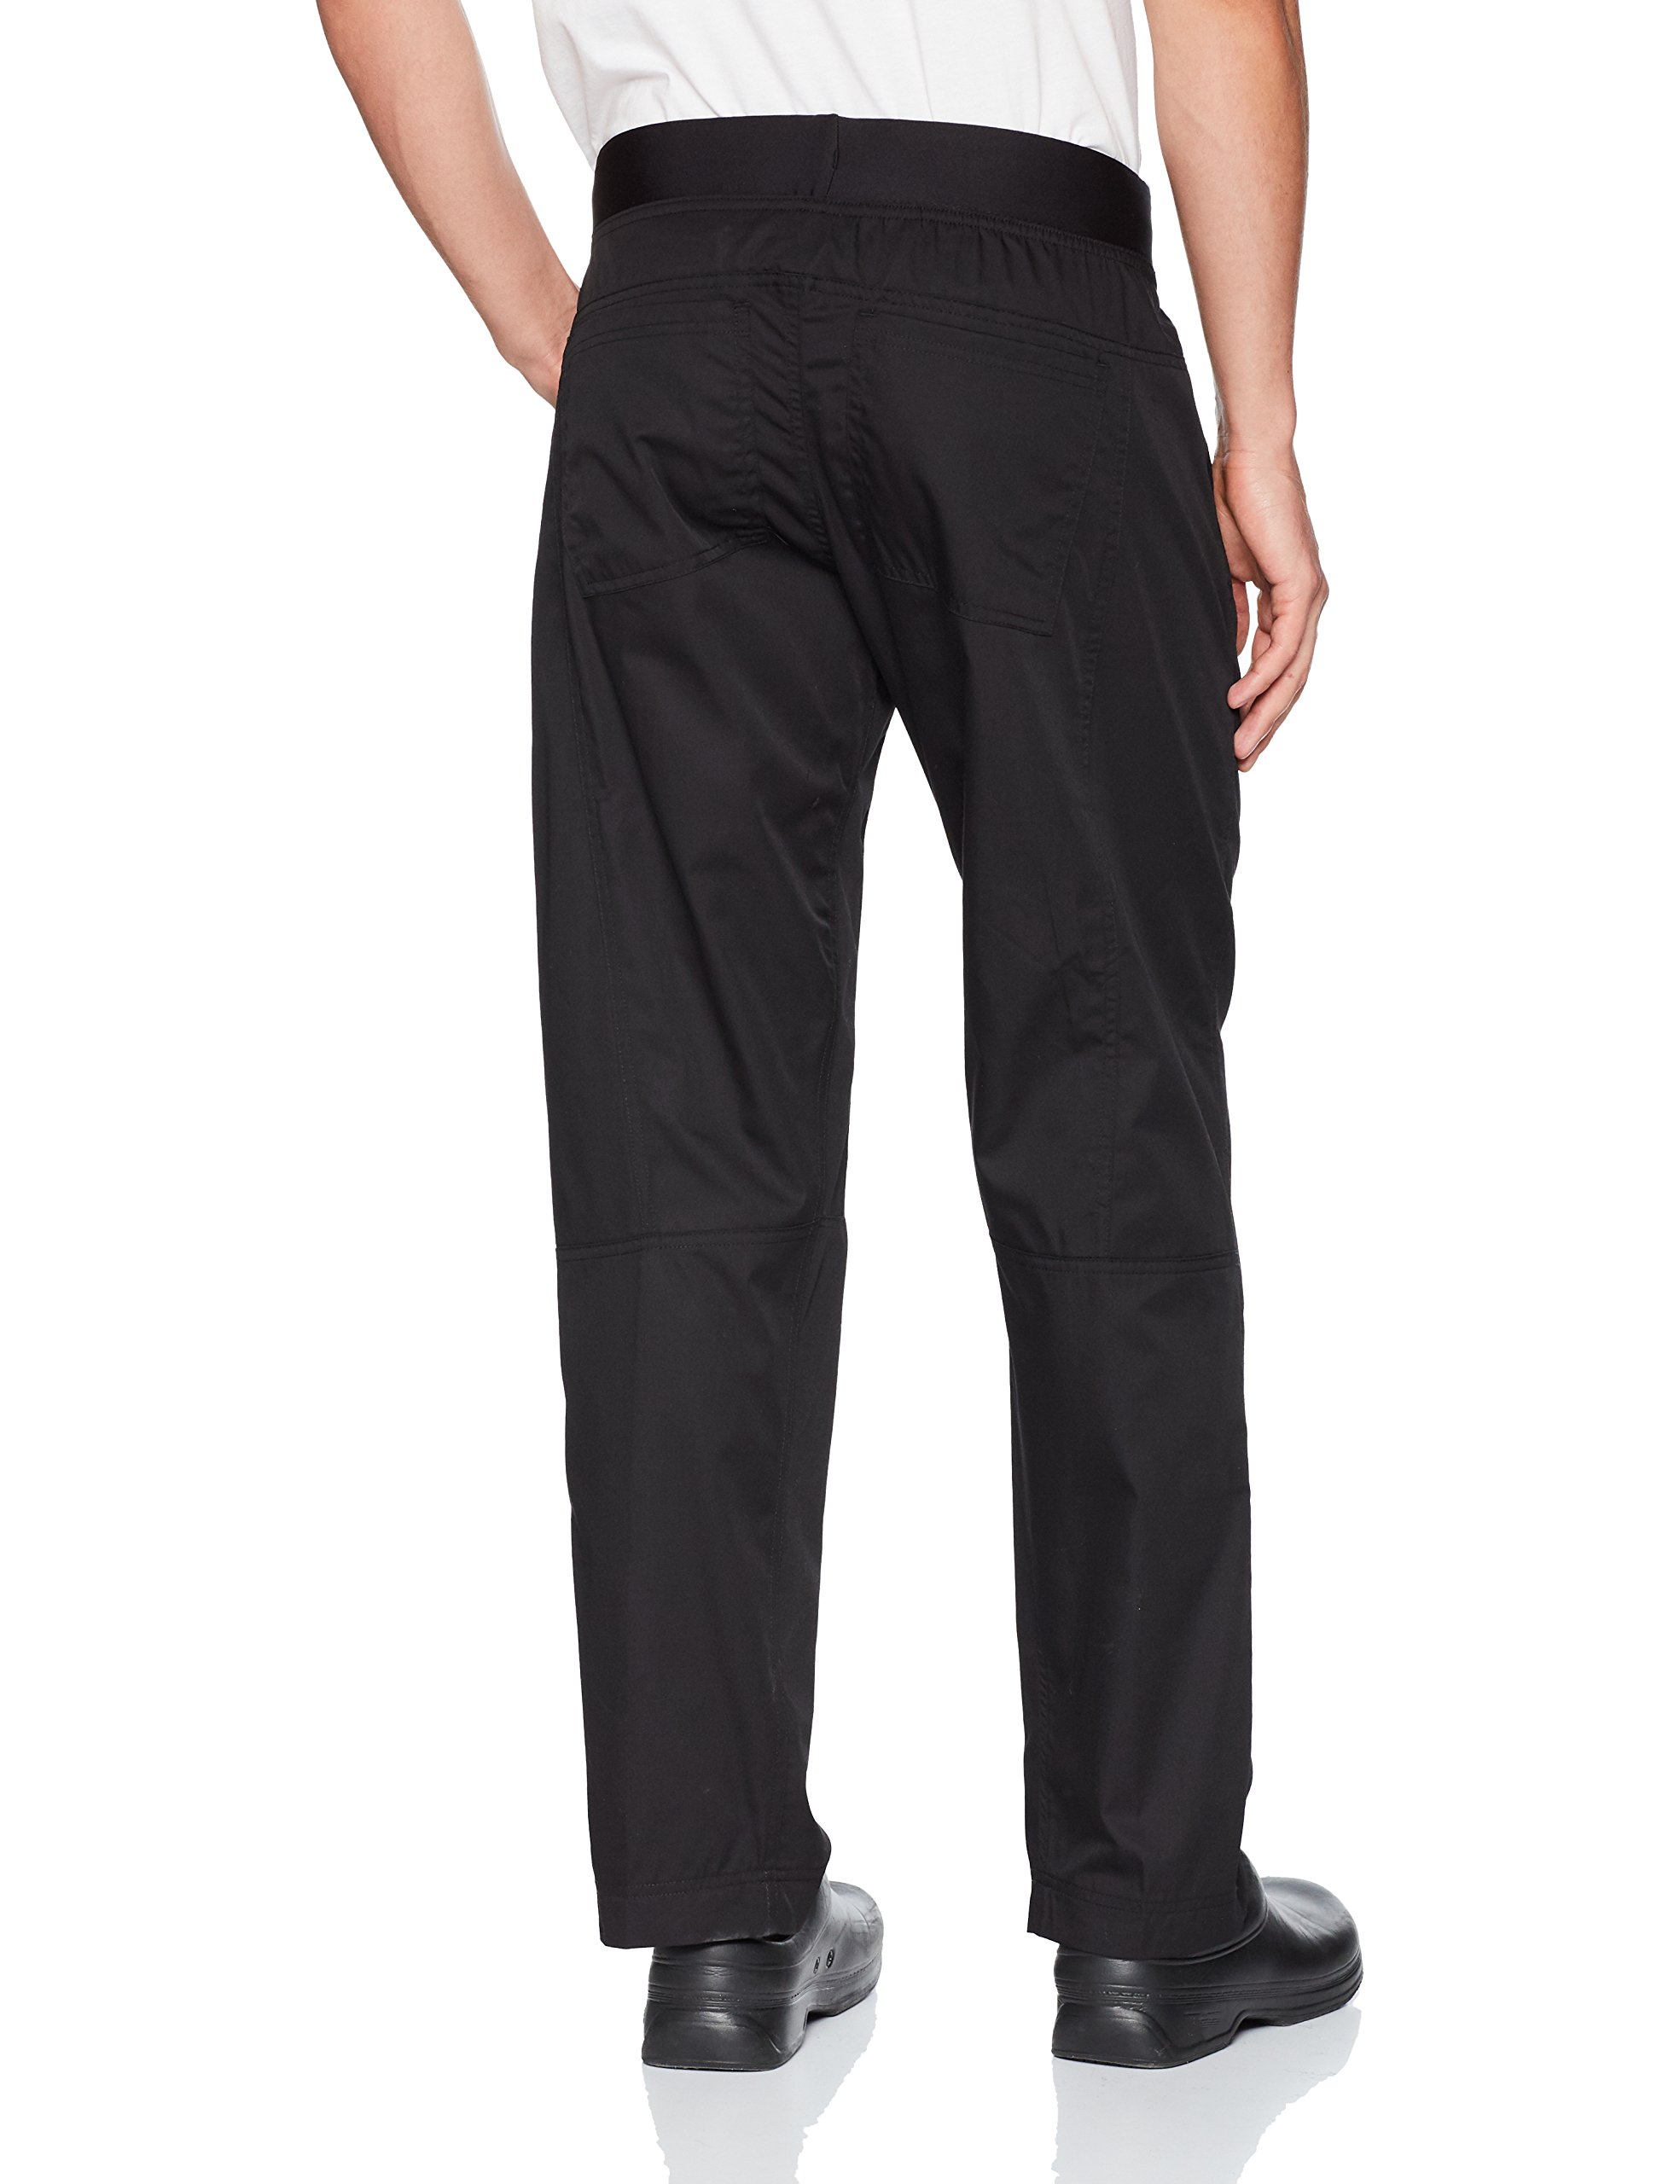 Chef Works Men's Lightweight Slim Chef Pants, Black, Small by Chef Works (Image #2)